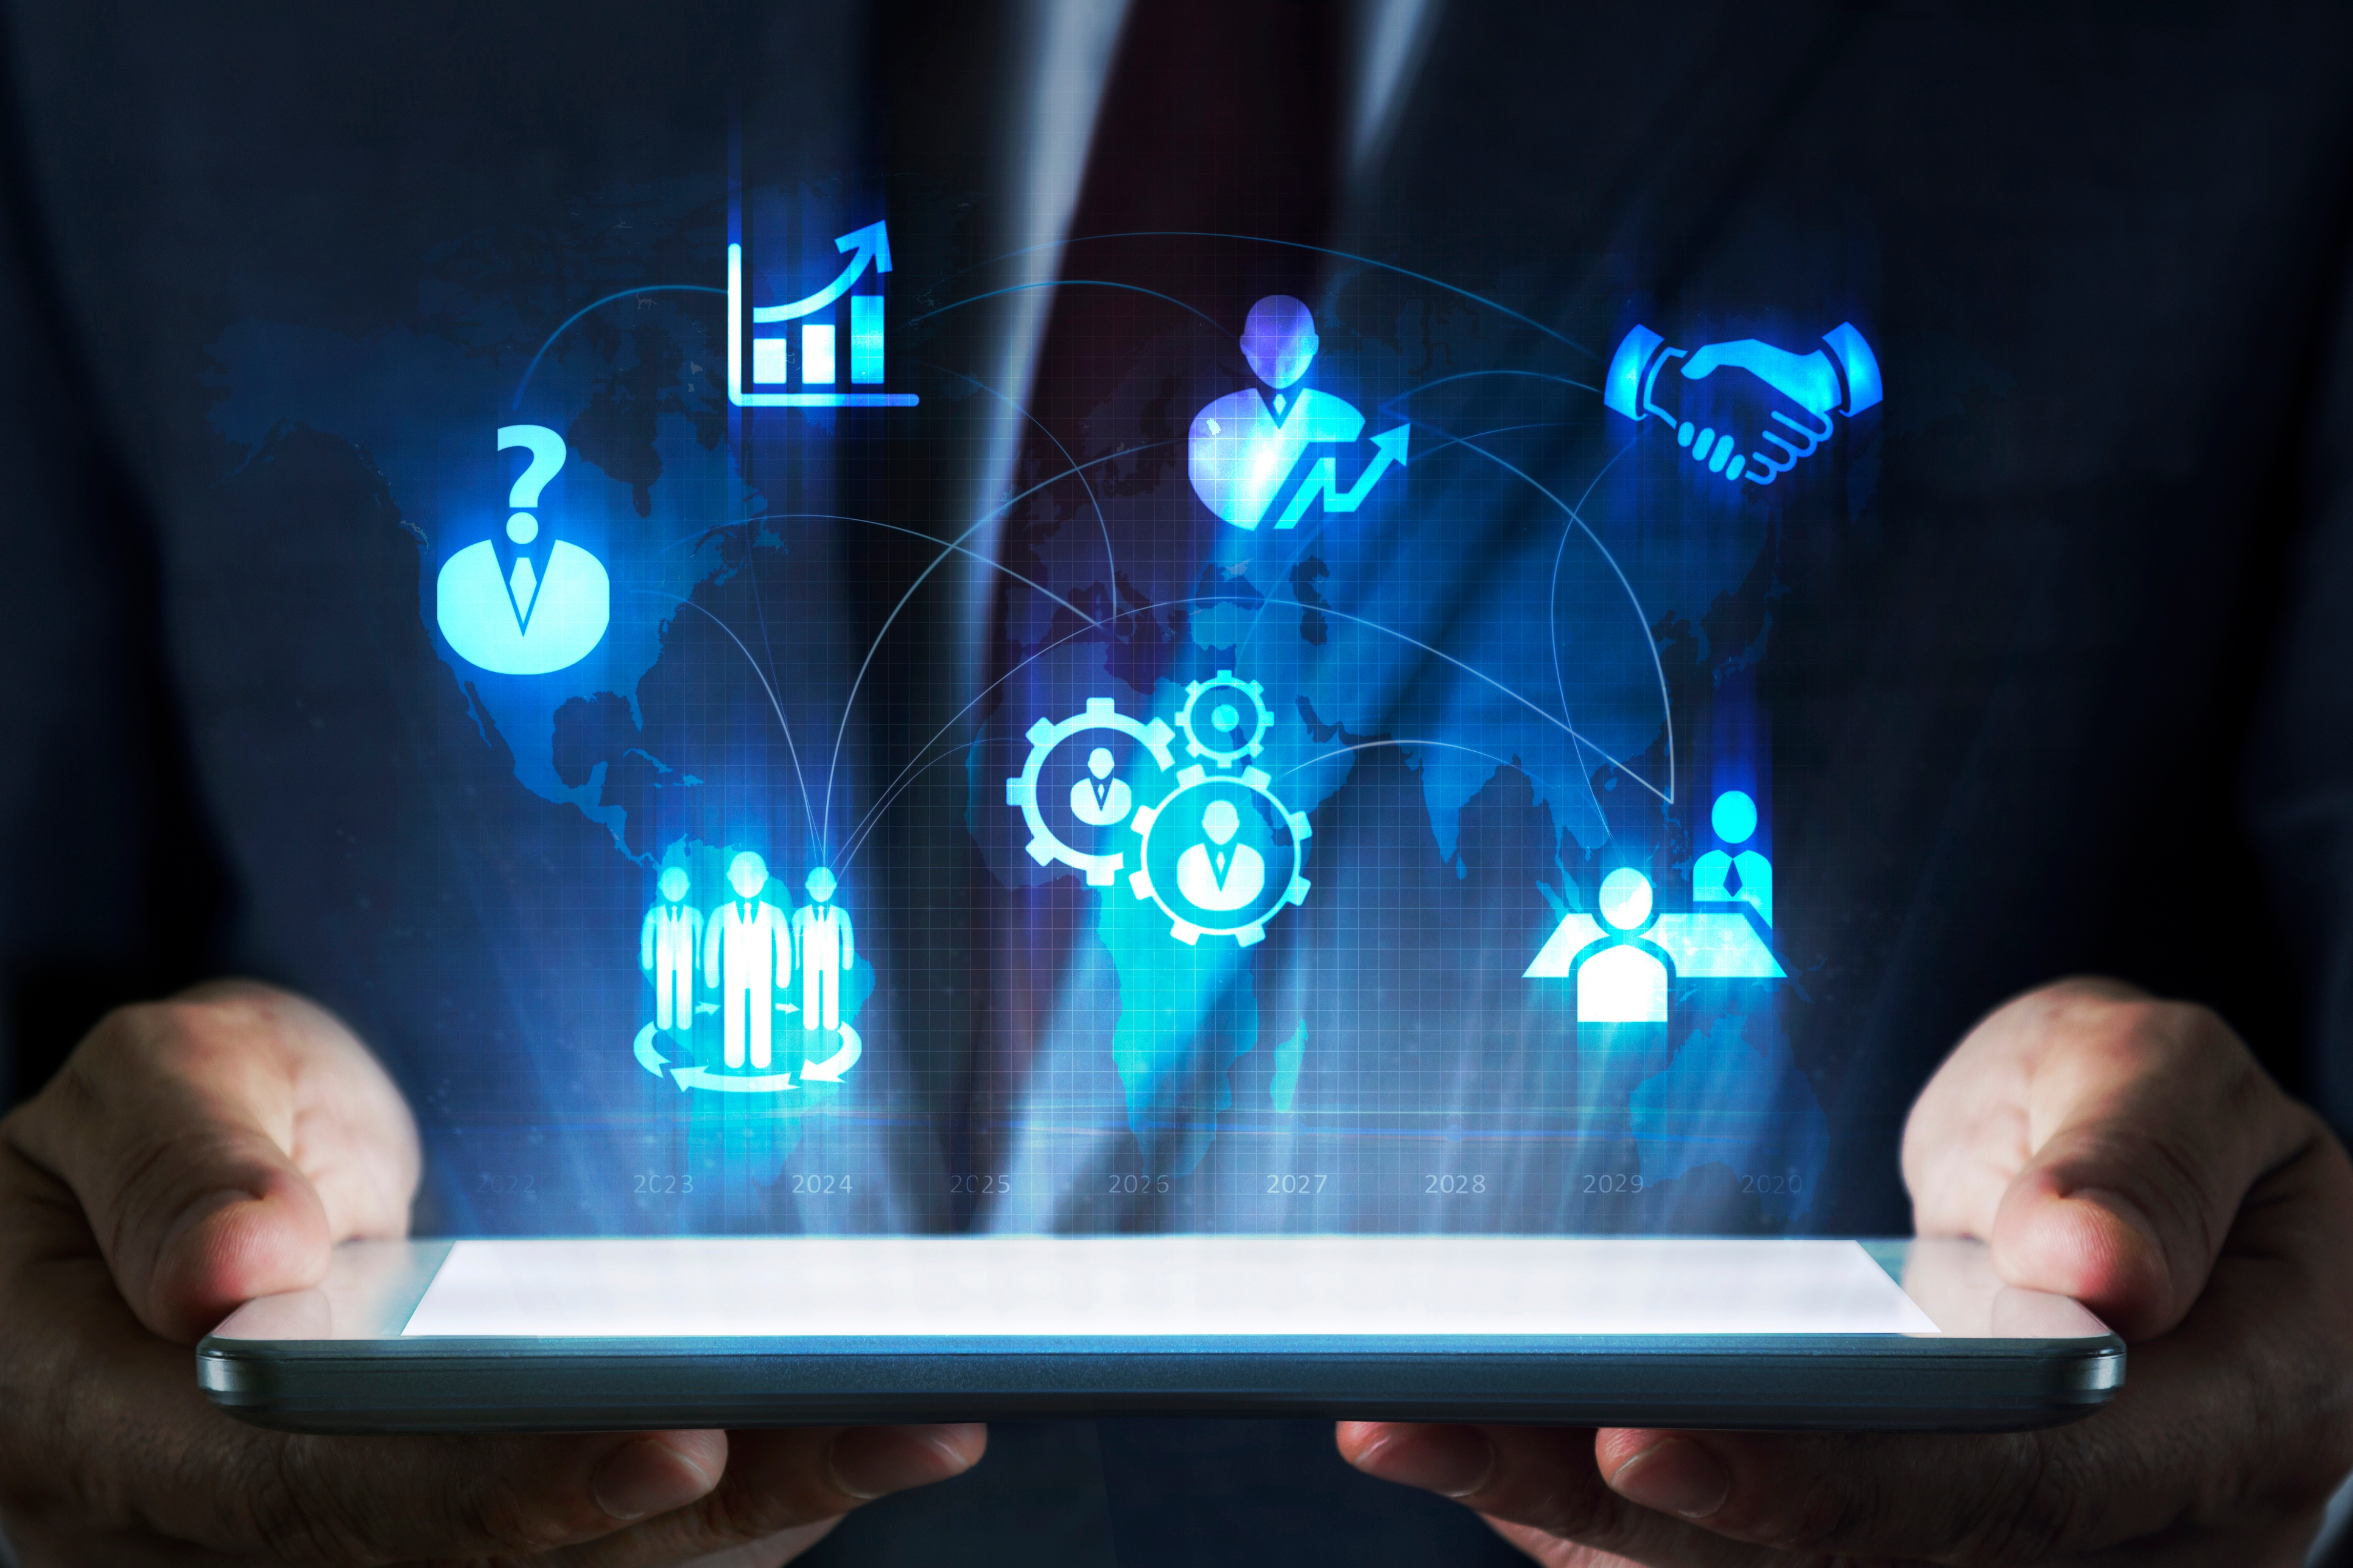 Employers—here's how to adopt HR tech